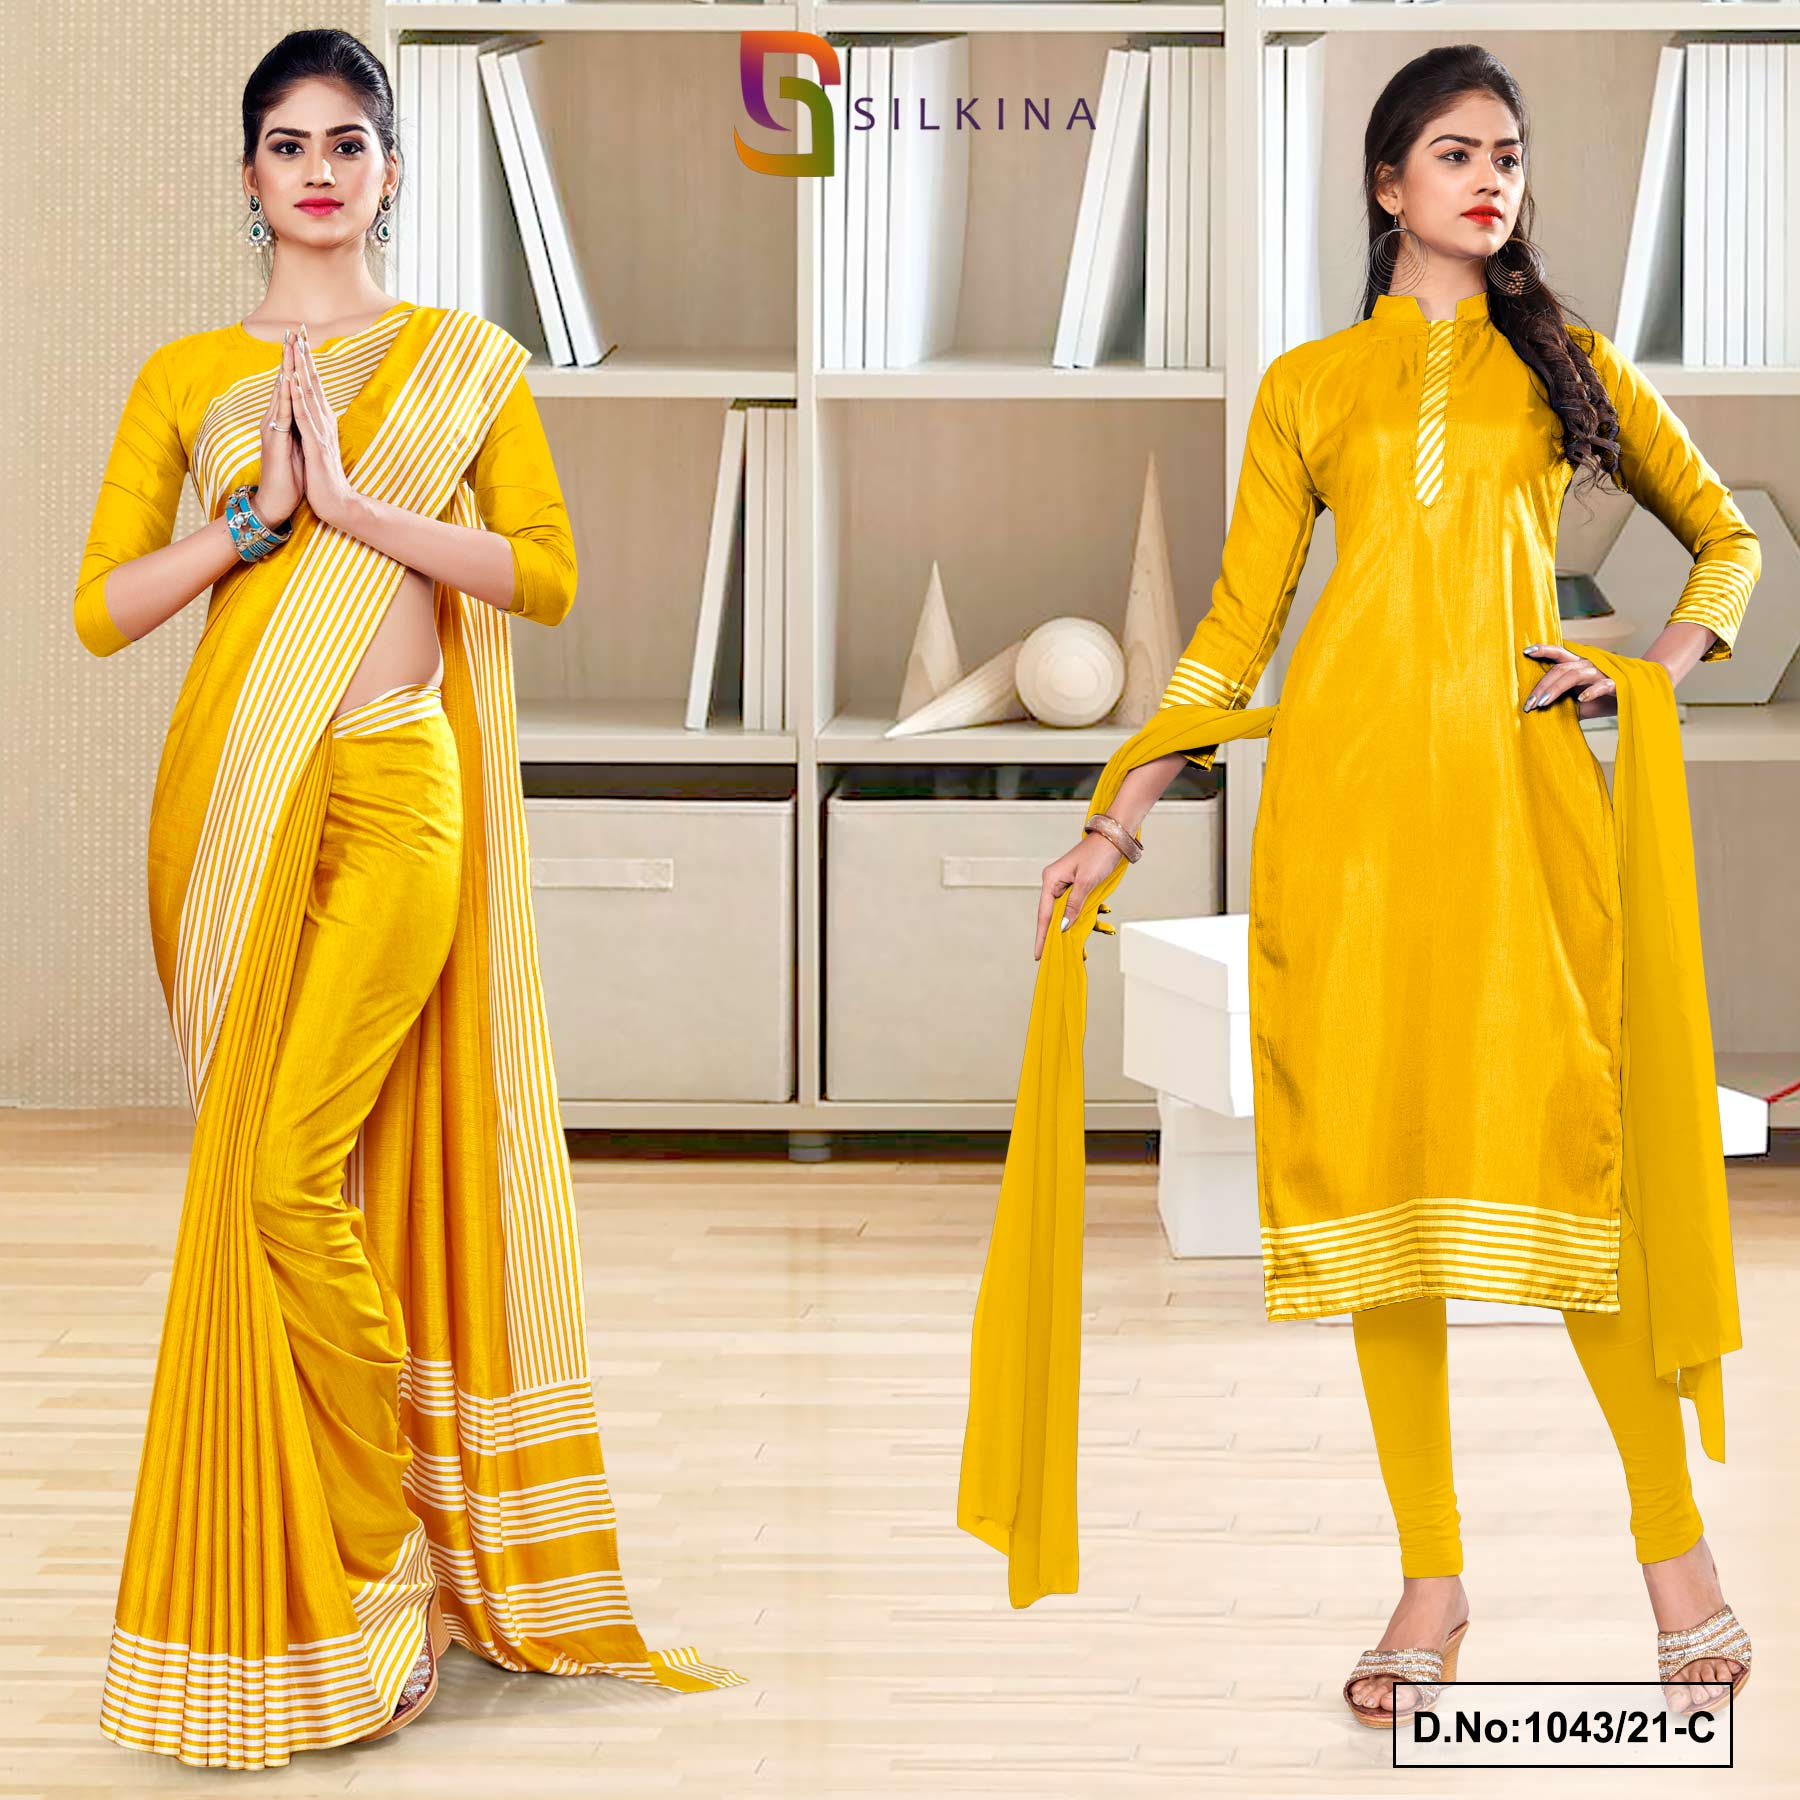 Yellow Gold Plain Border Premium Polycotton Raw Silk Saree Salwar Combo for Staff Uniform Sarees